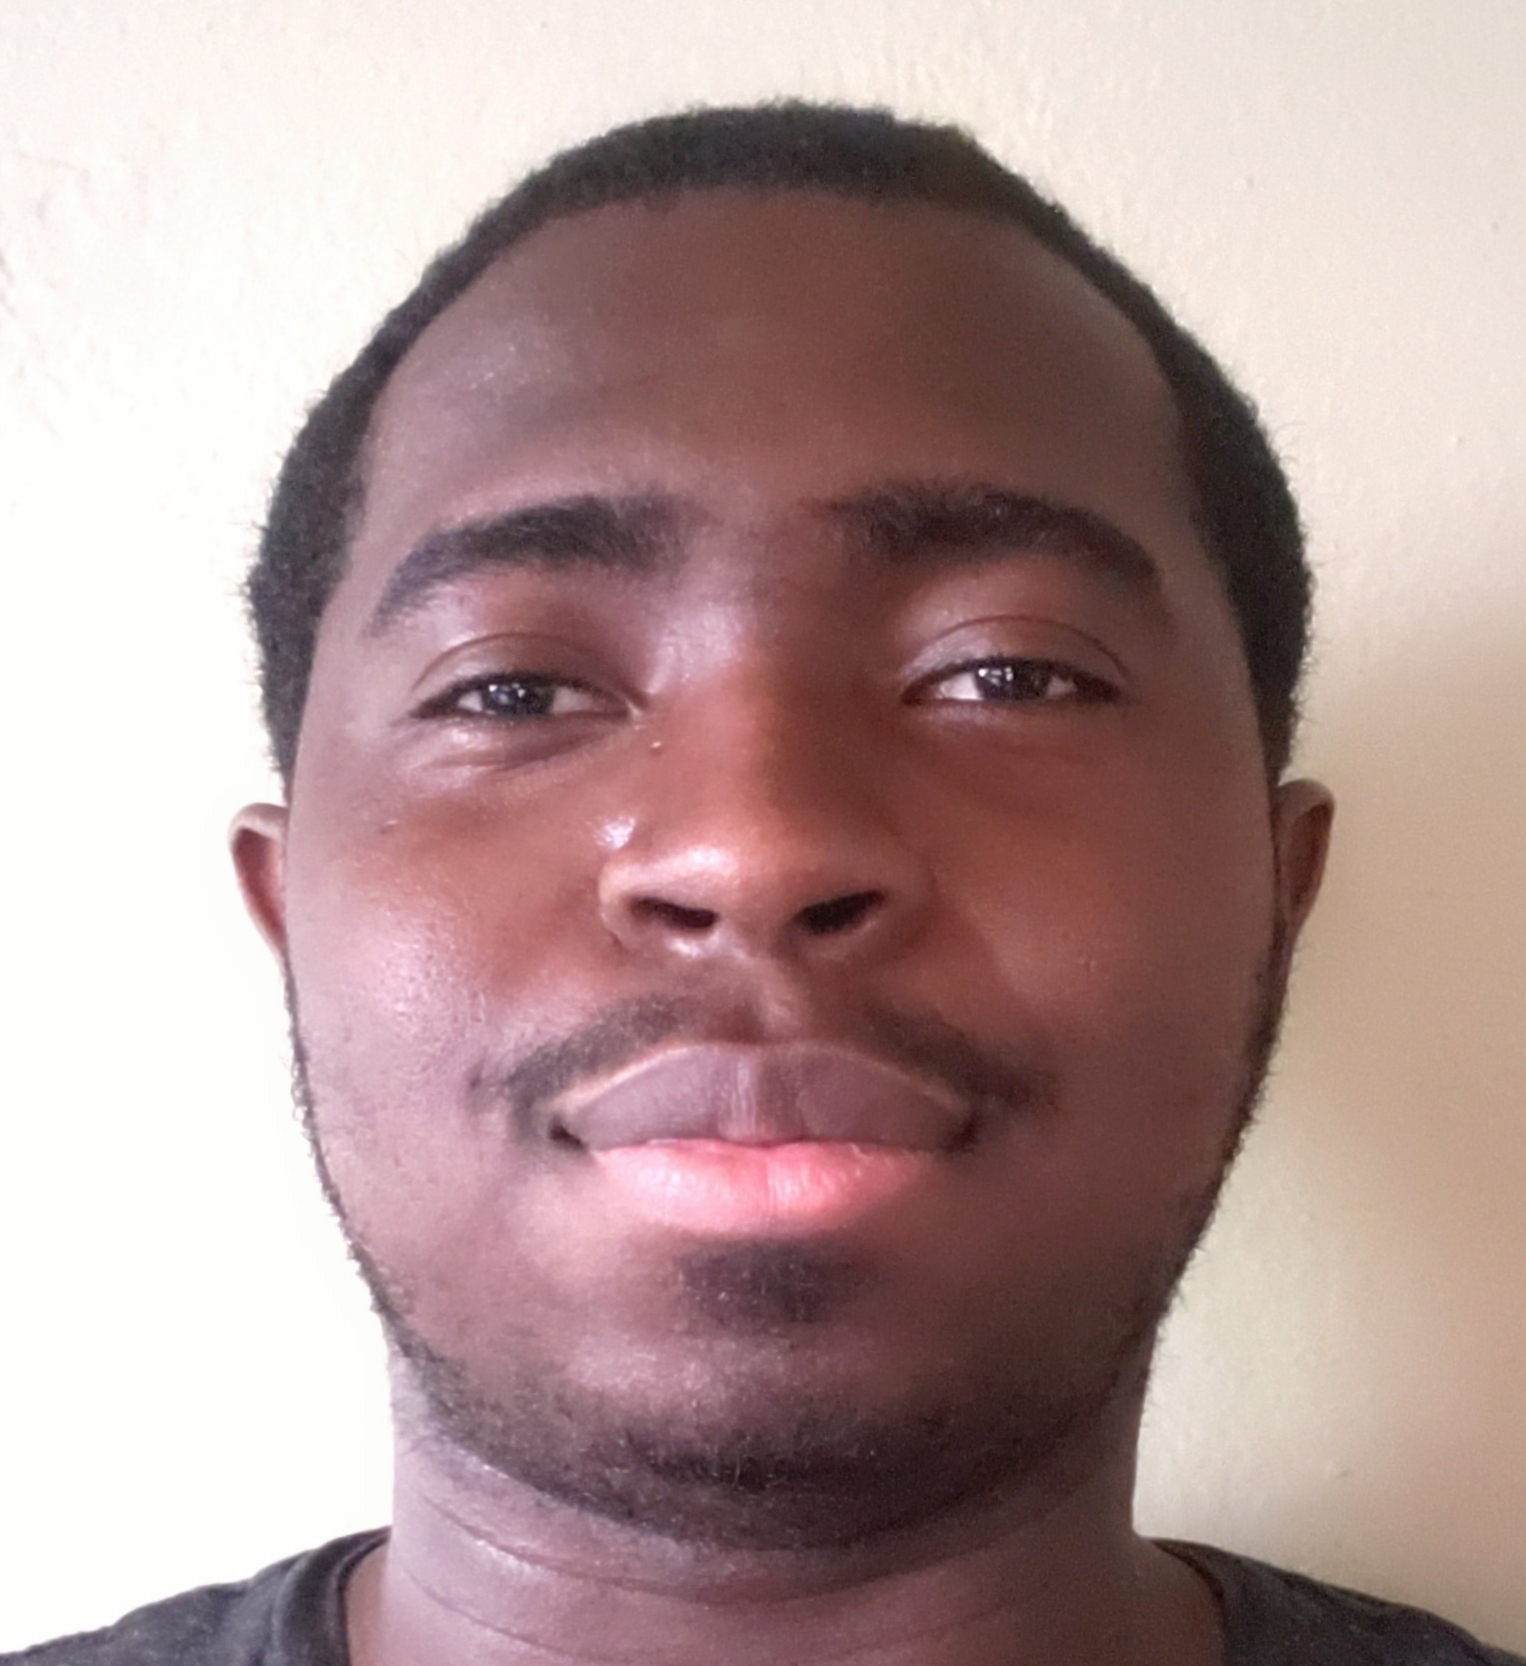 Dantae Flowers - I am a tech hardware enthusiast and I joined Pursuit to get a solid grasp on software. I hope to become a competent developer and take my first solid step in the tech industry.